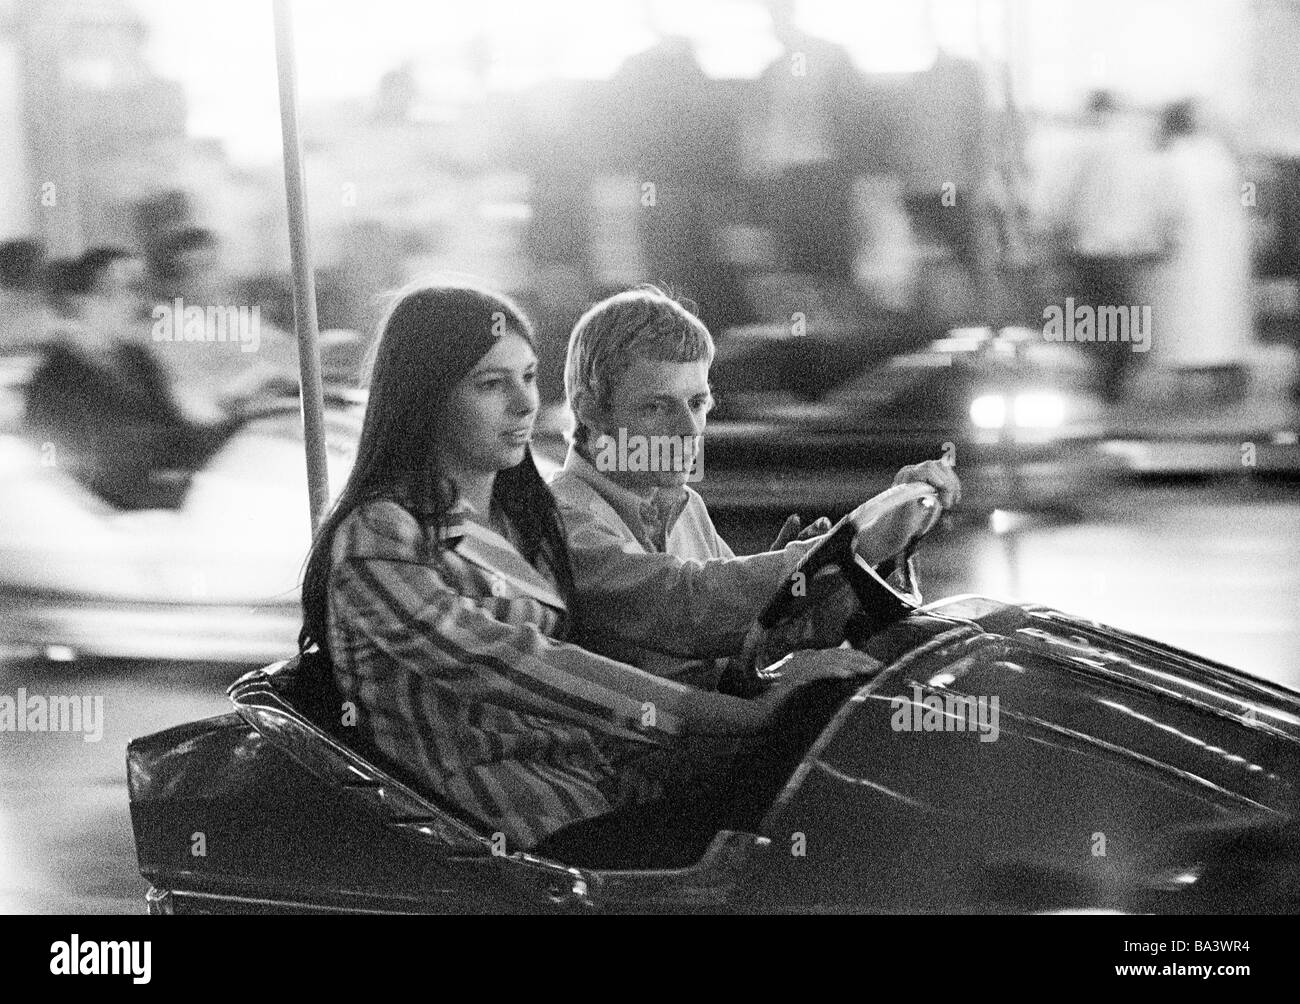 Seventies, black and white photo, people, young couple in a dodgem car, kermess, aged 20 to 25 years, Crange Kermess, - Stock Image